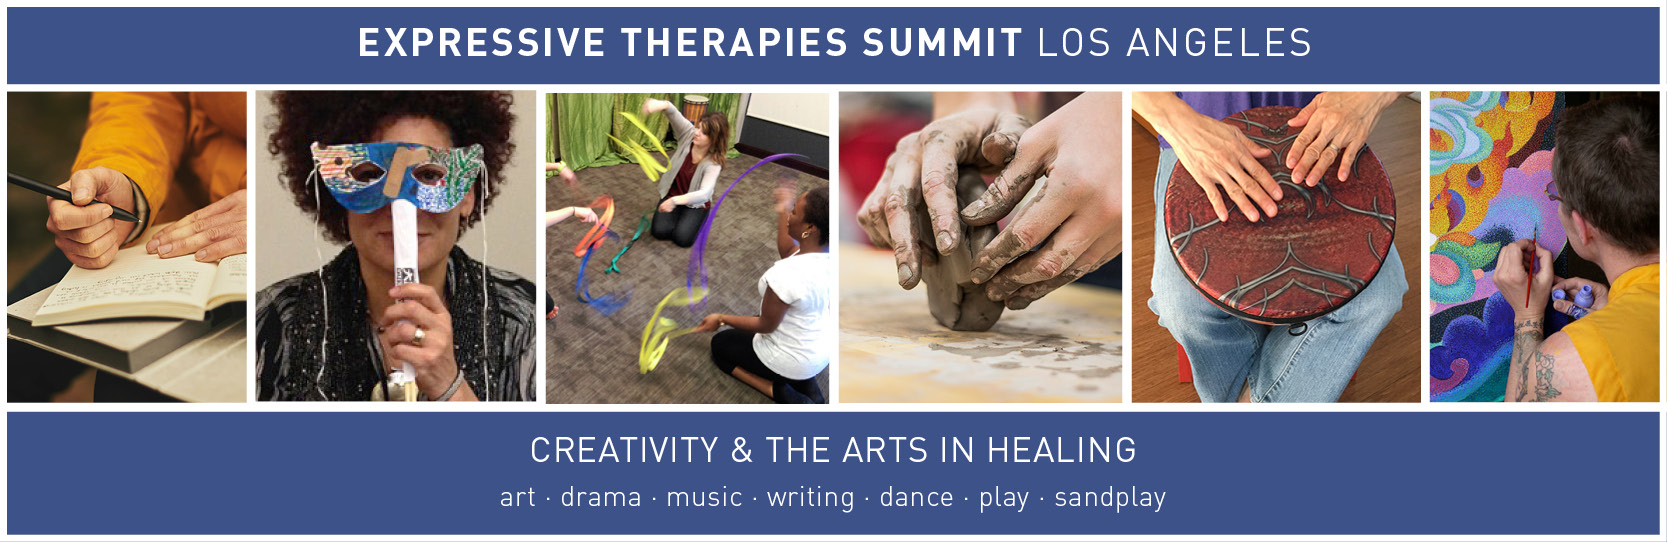 Expressive Therapies Summit: Los Angeles 2020 Registration Site